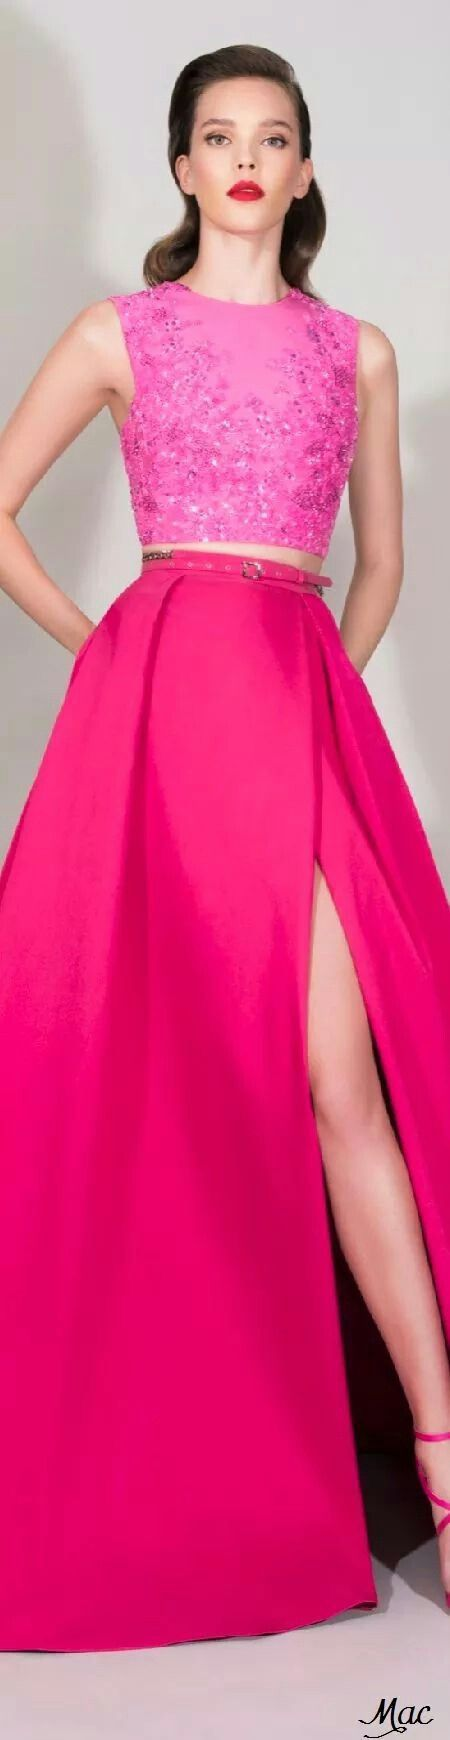 123 best vestidos images on Pinterest | Party outfits, Long prom ...